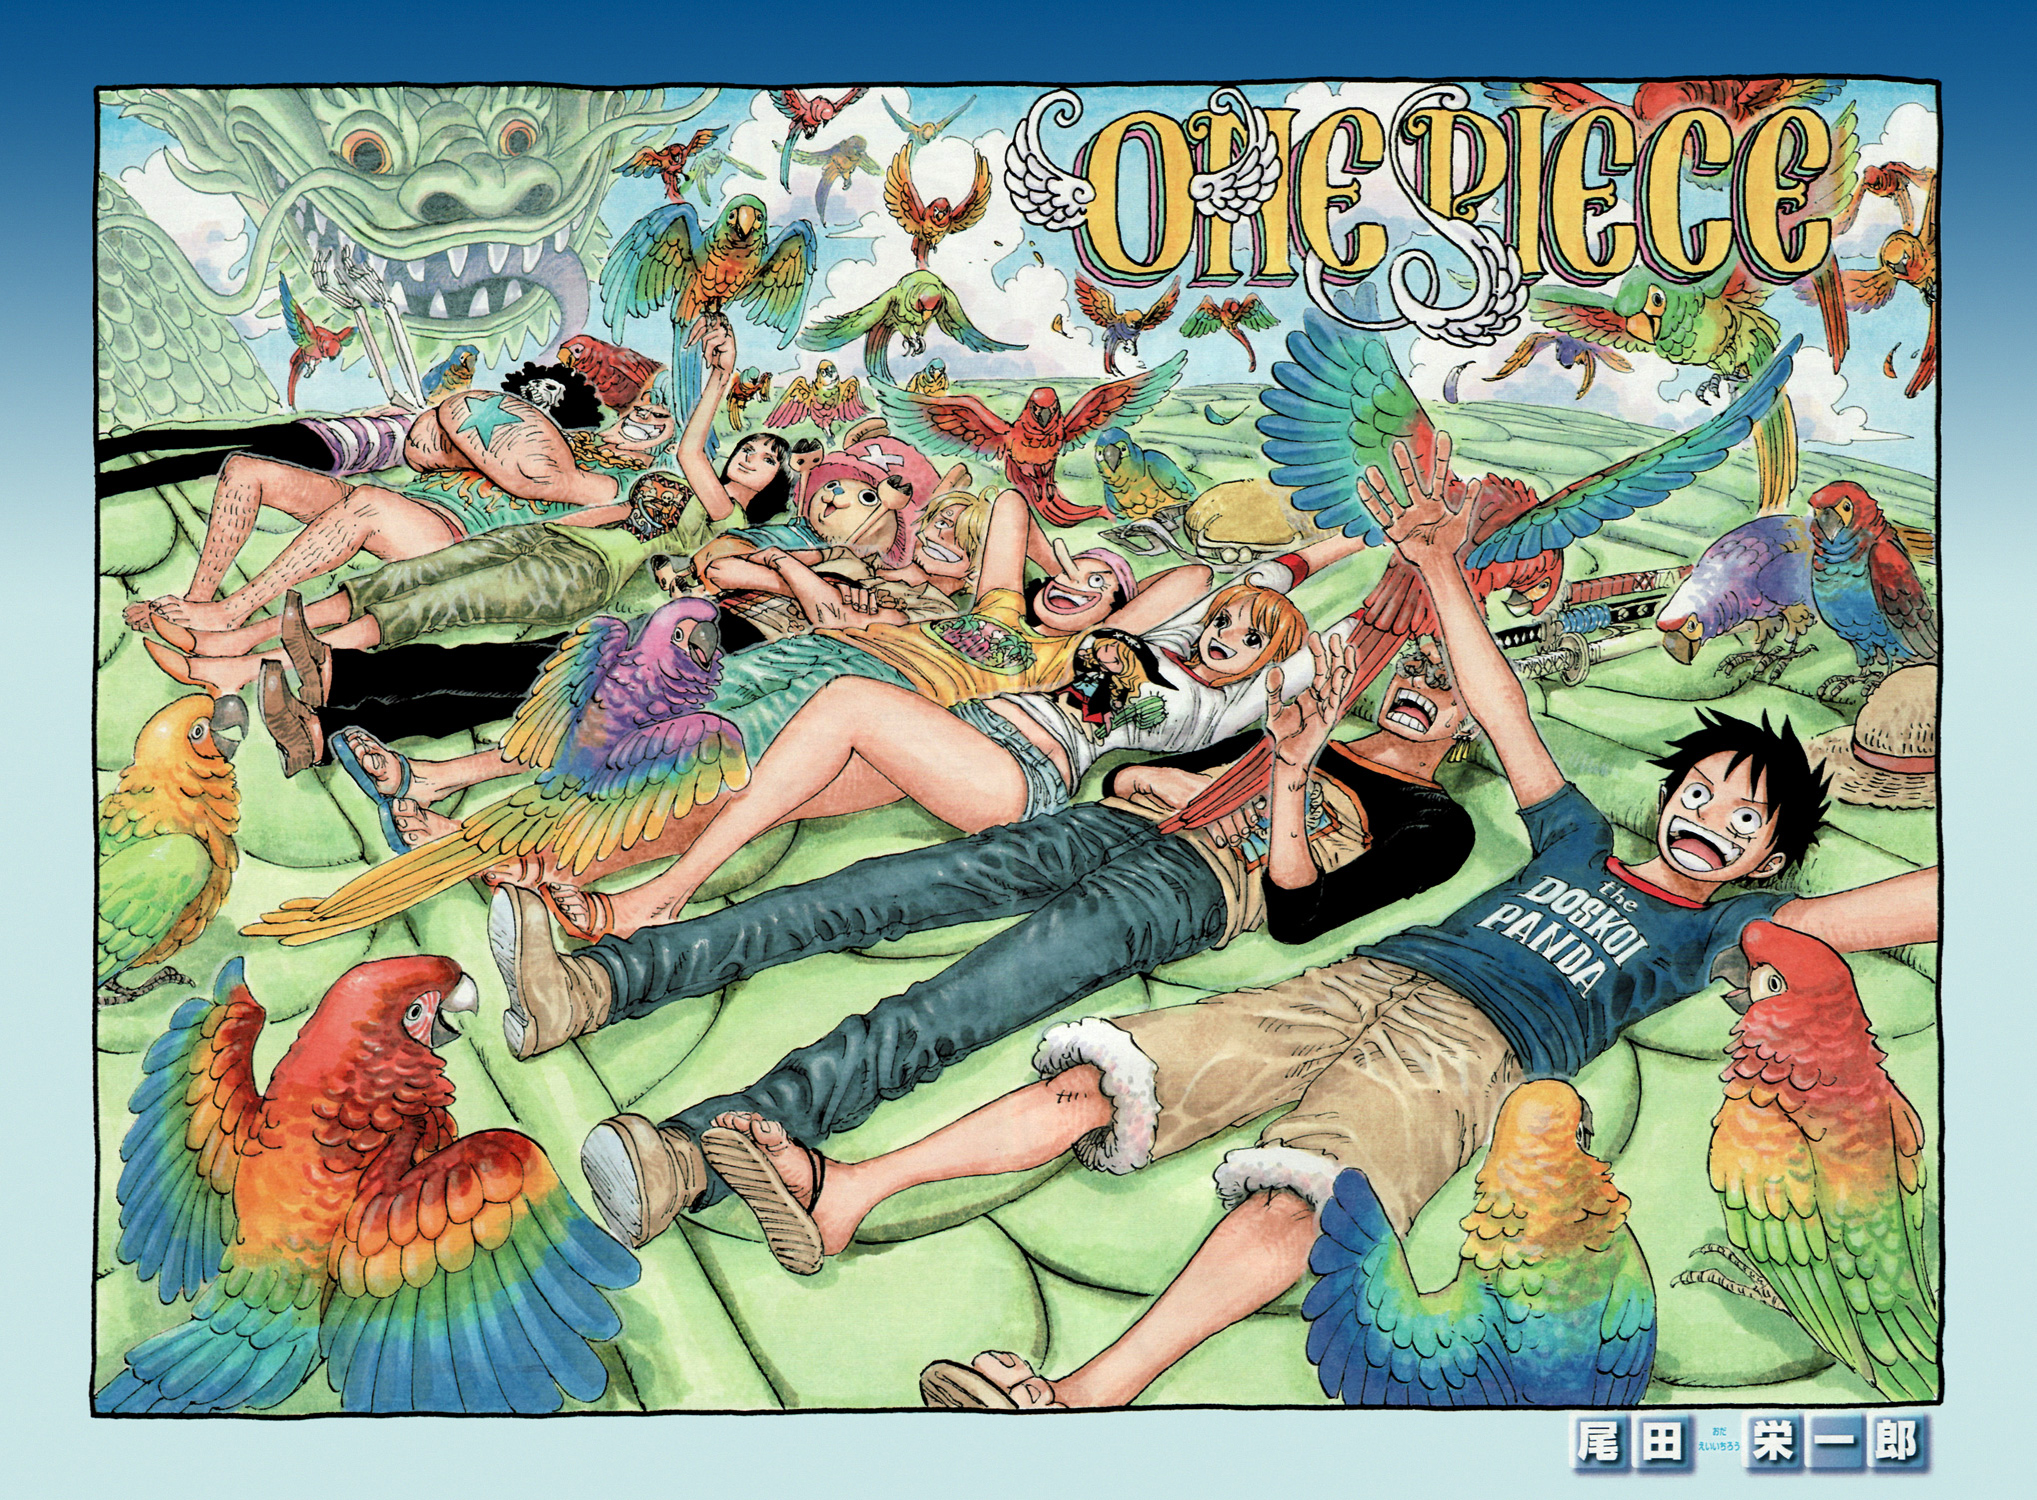 one piece color spreads hq - Google Search | One piece manga, One piece luffy, One piece chapter